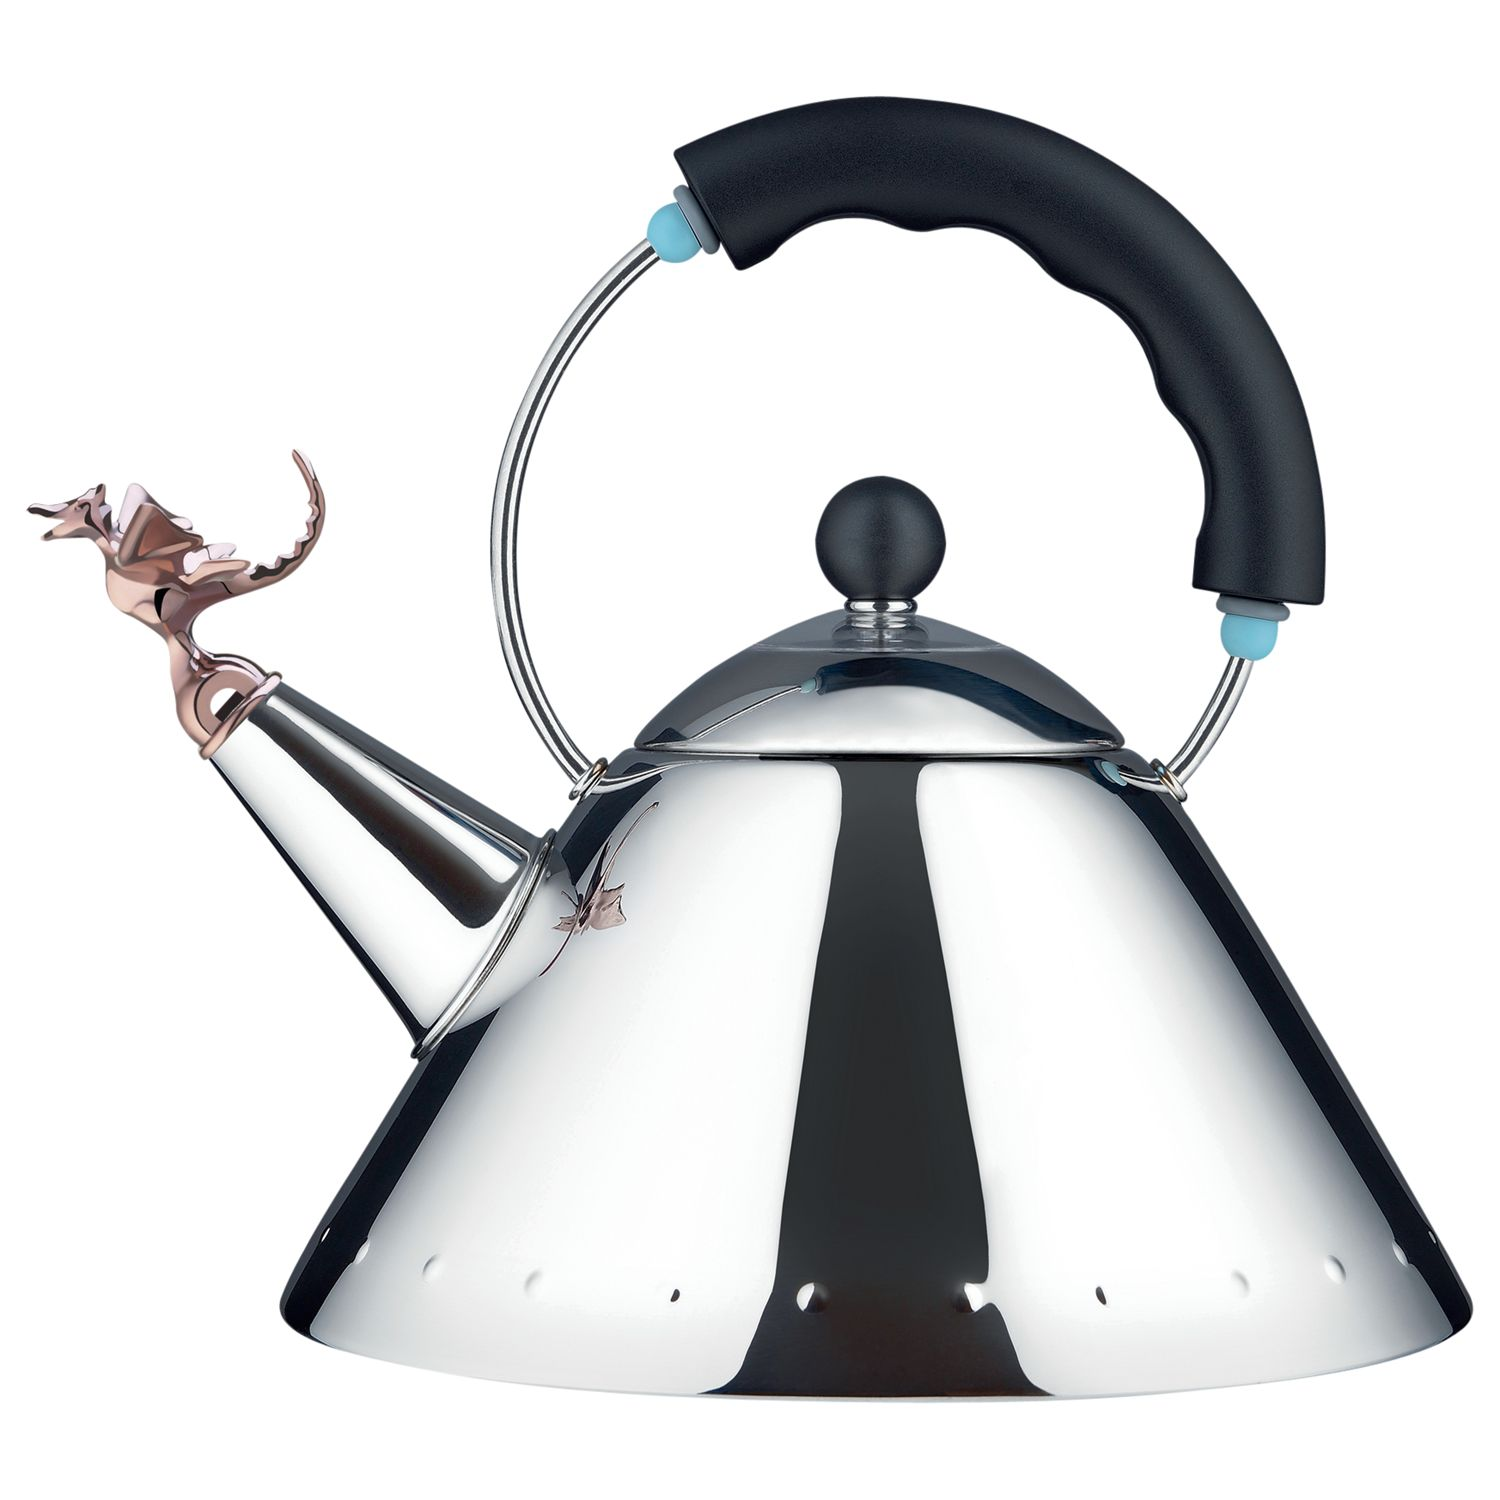 Buy Alessi Tea Rex Hob Kettle with Dragon Whistle Online at johnlewis.com